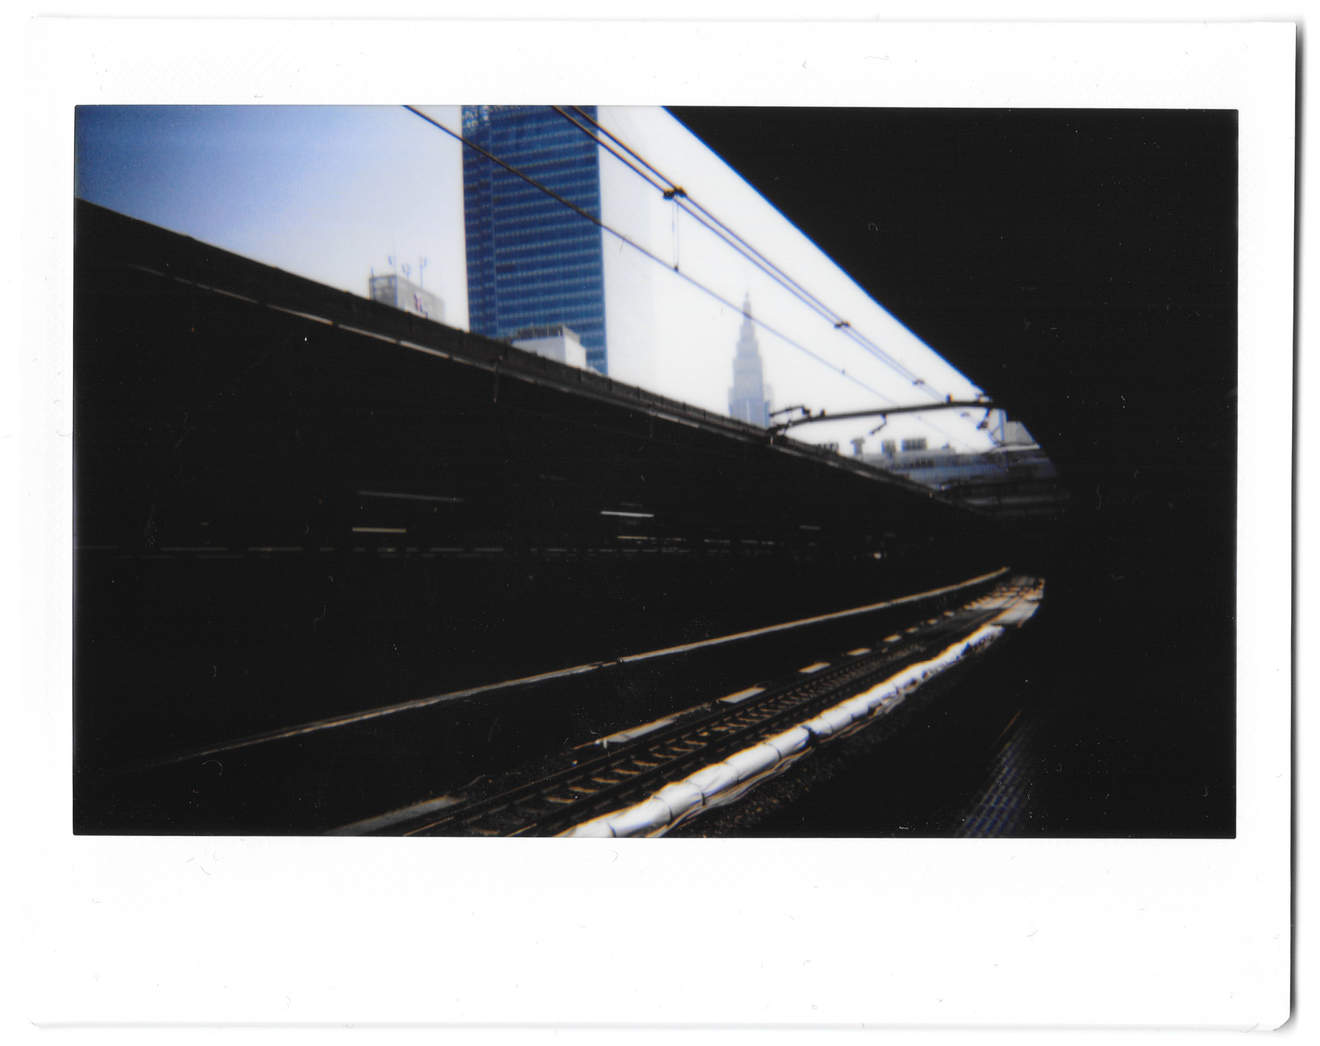 "Instant photo for Day 125 of ""A Year in an Instant"" by Nuno Coelho Santos"